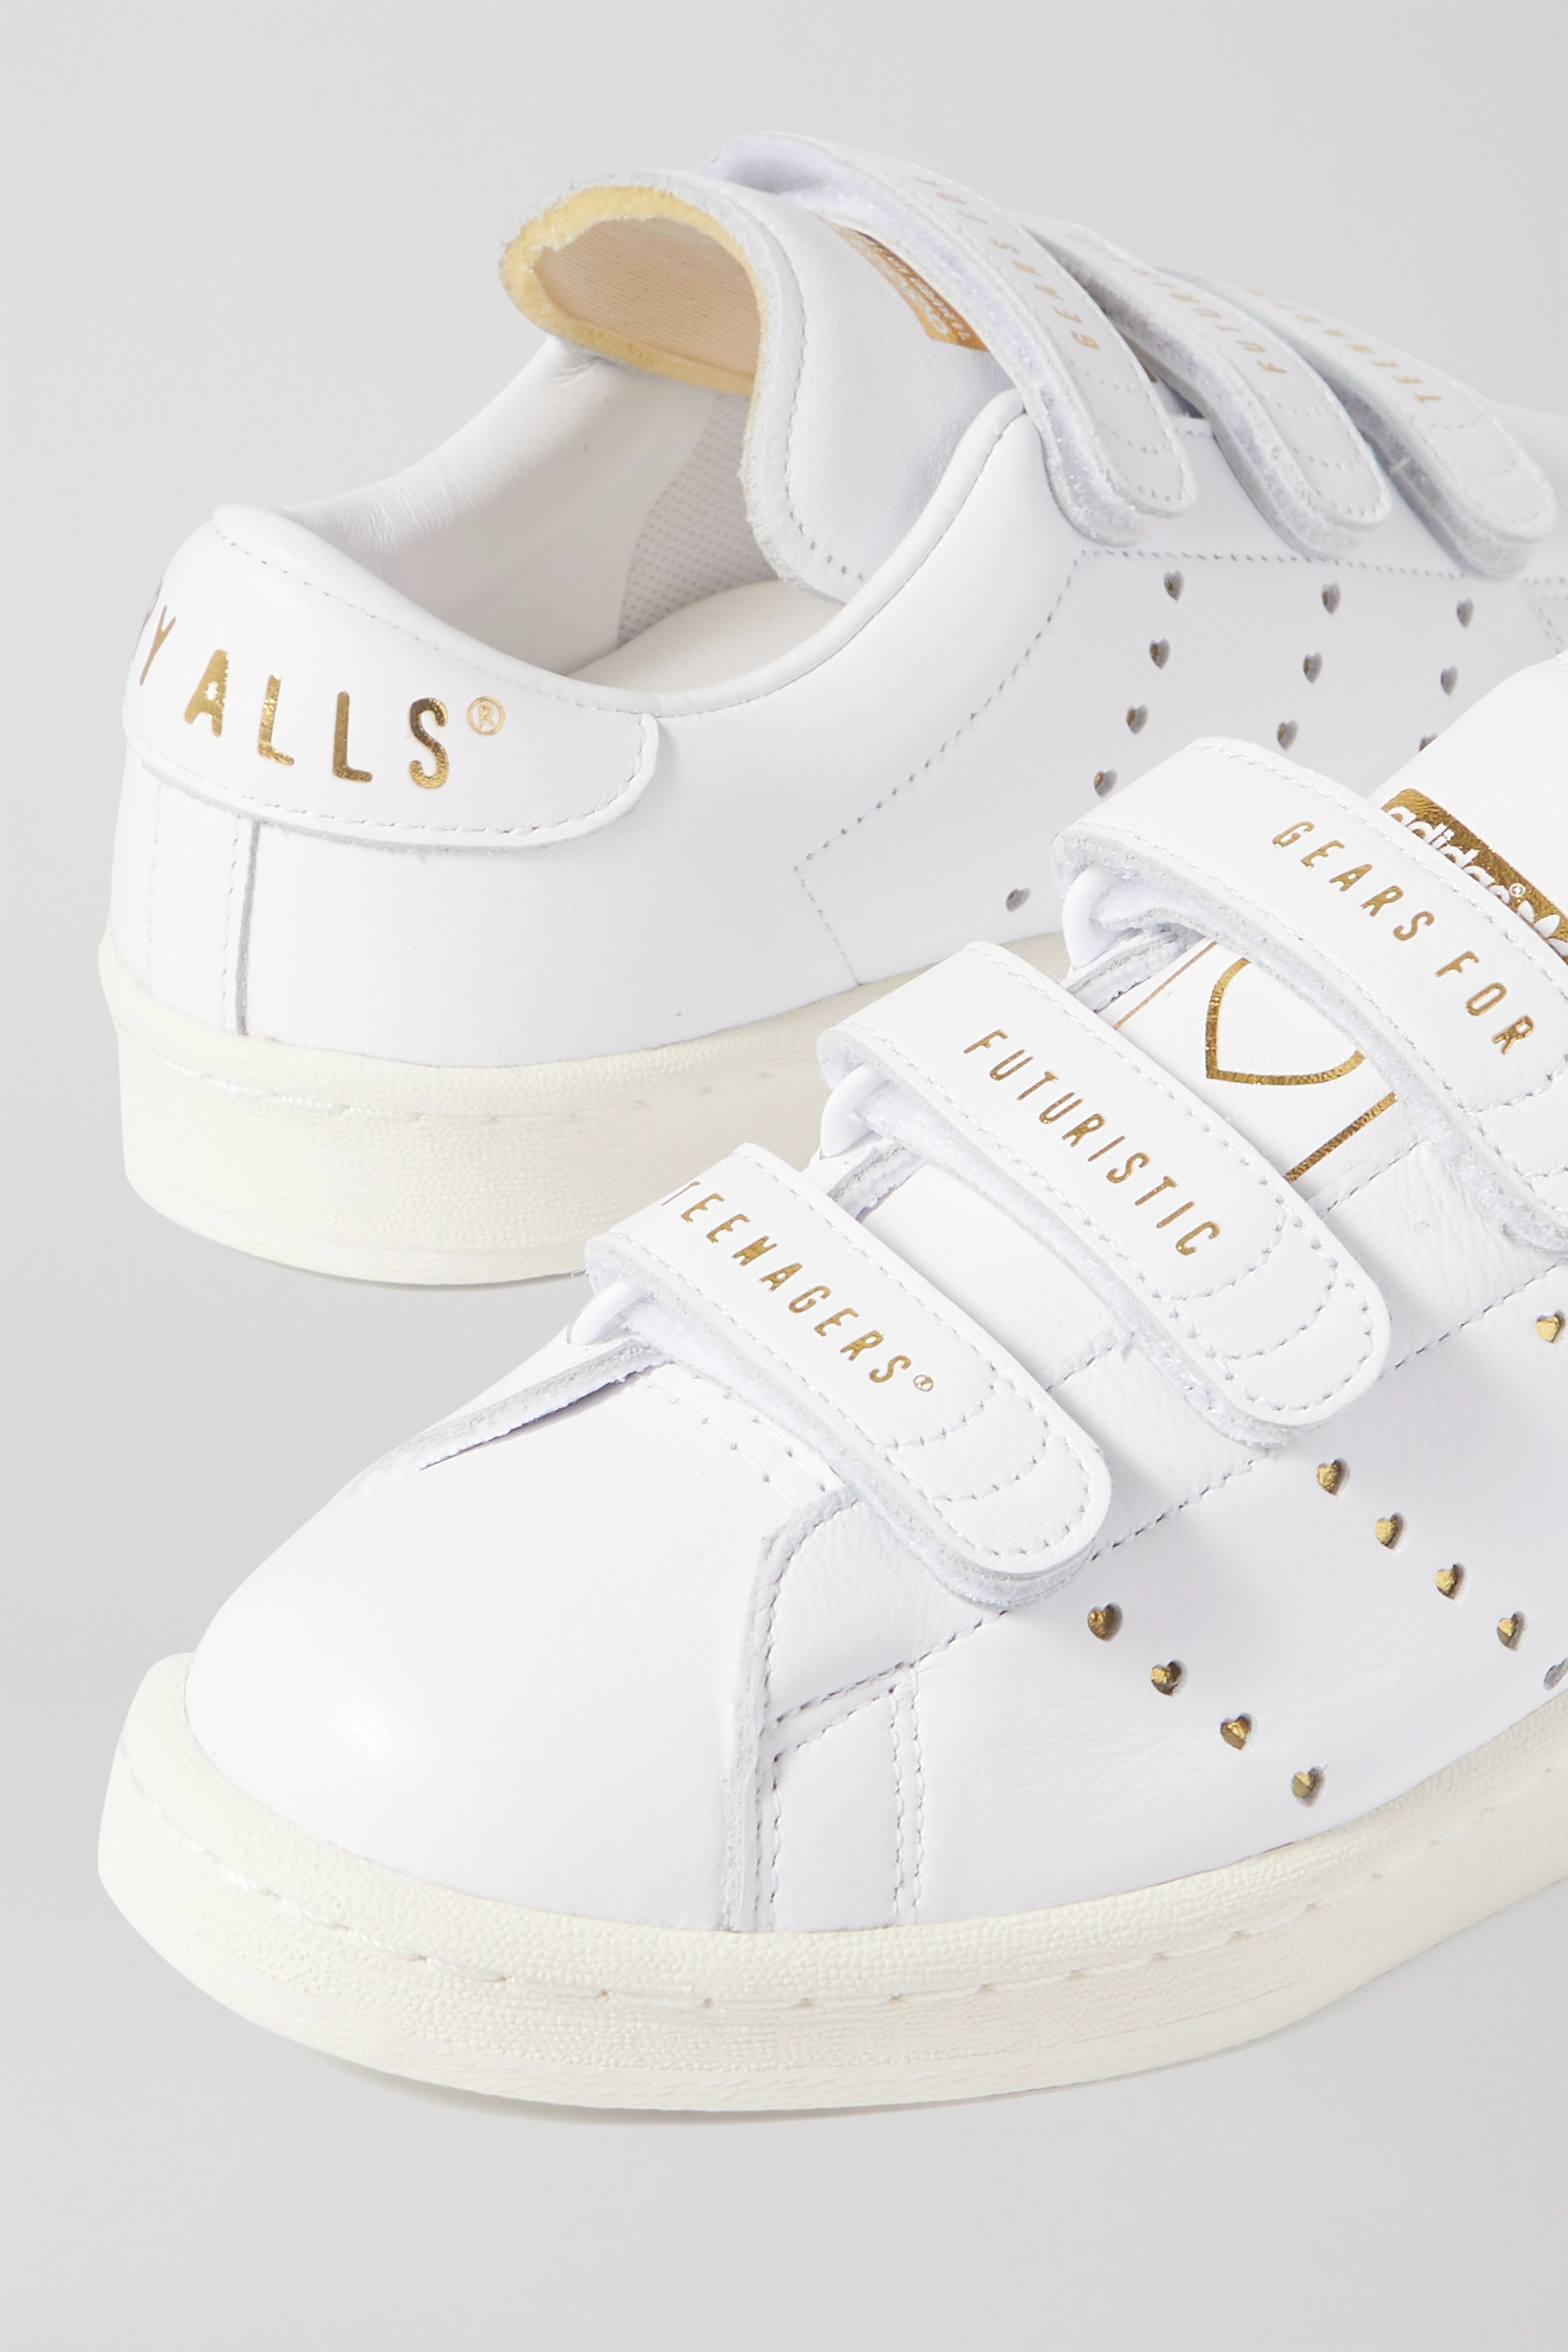 adidas Originals + Human Made printed leather sneakers